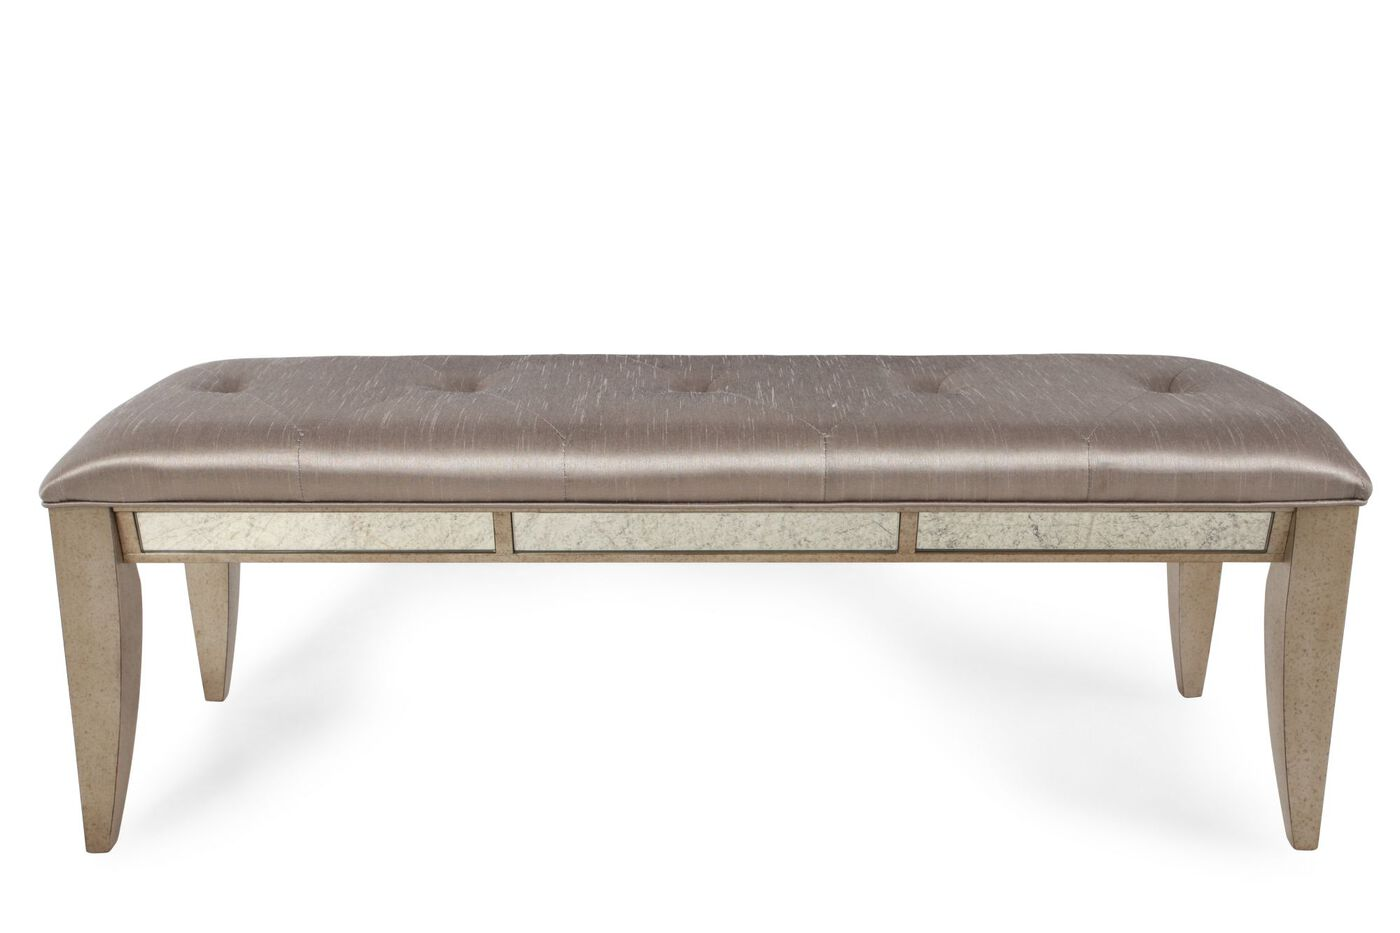 Bench By Bed: Mathis Brothers Furniture